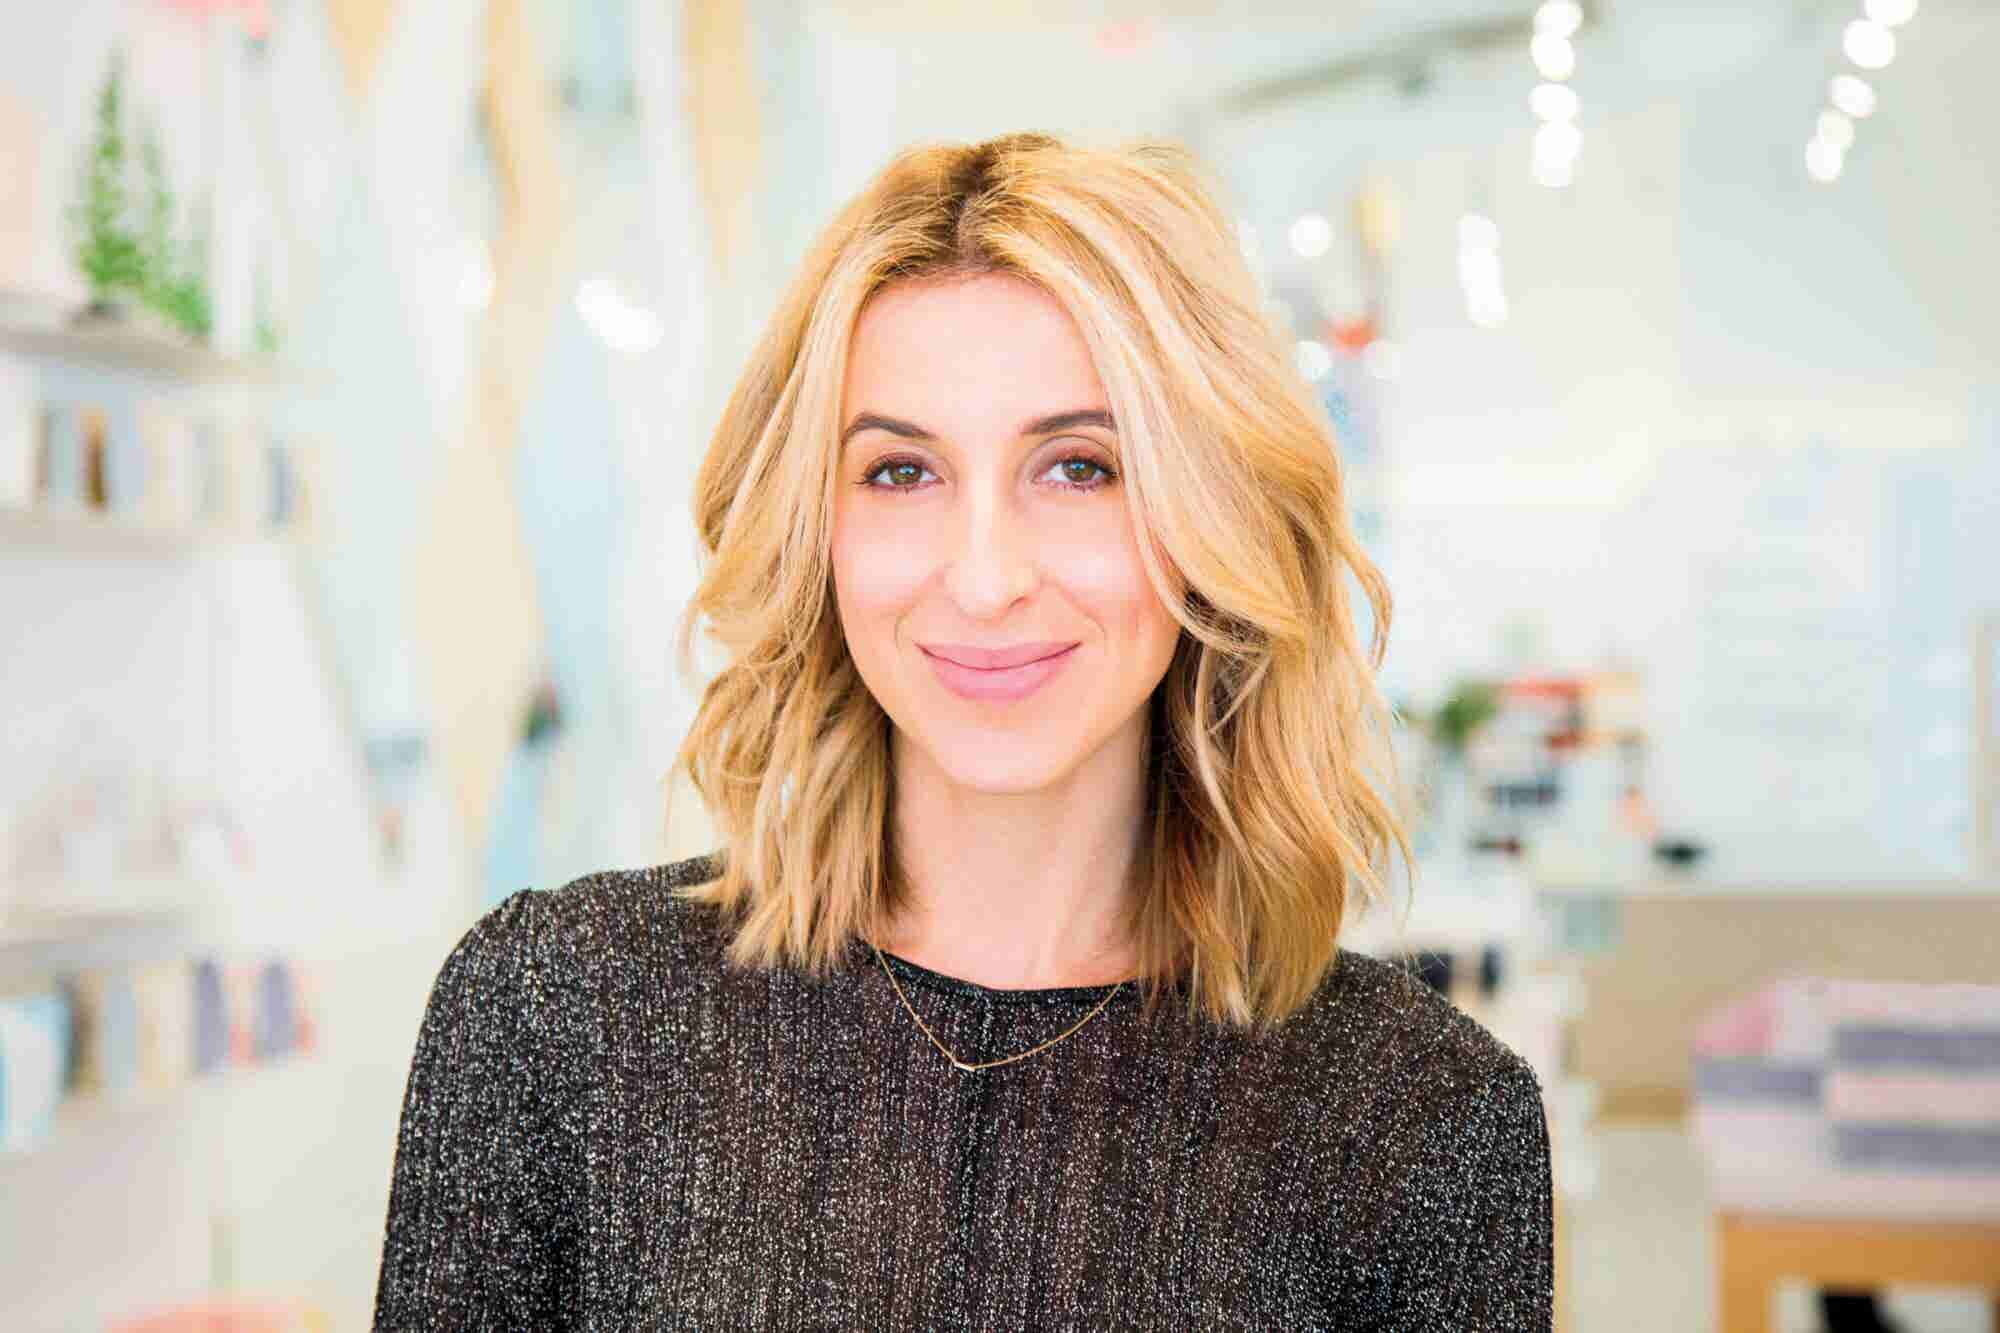 How Birchbox CEO Katia Beauchamp Evolved Along With Her Brand